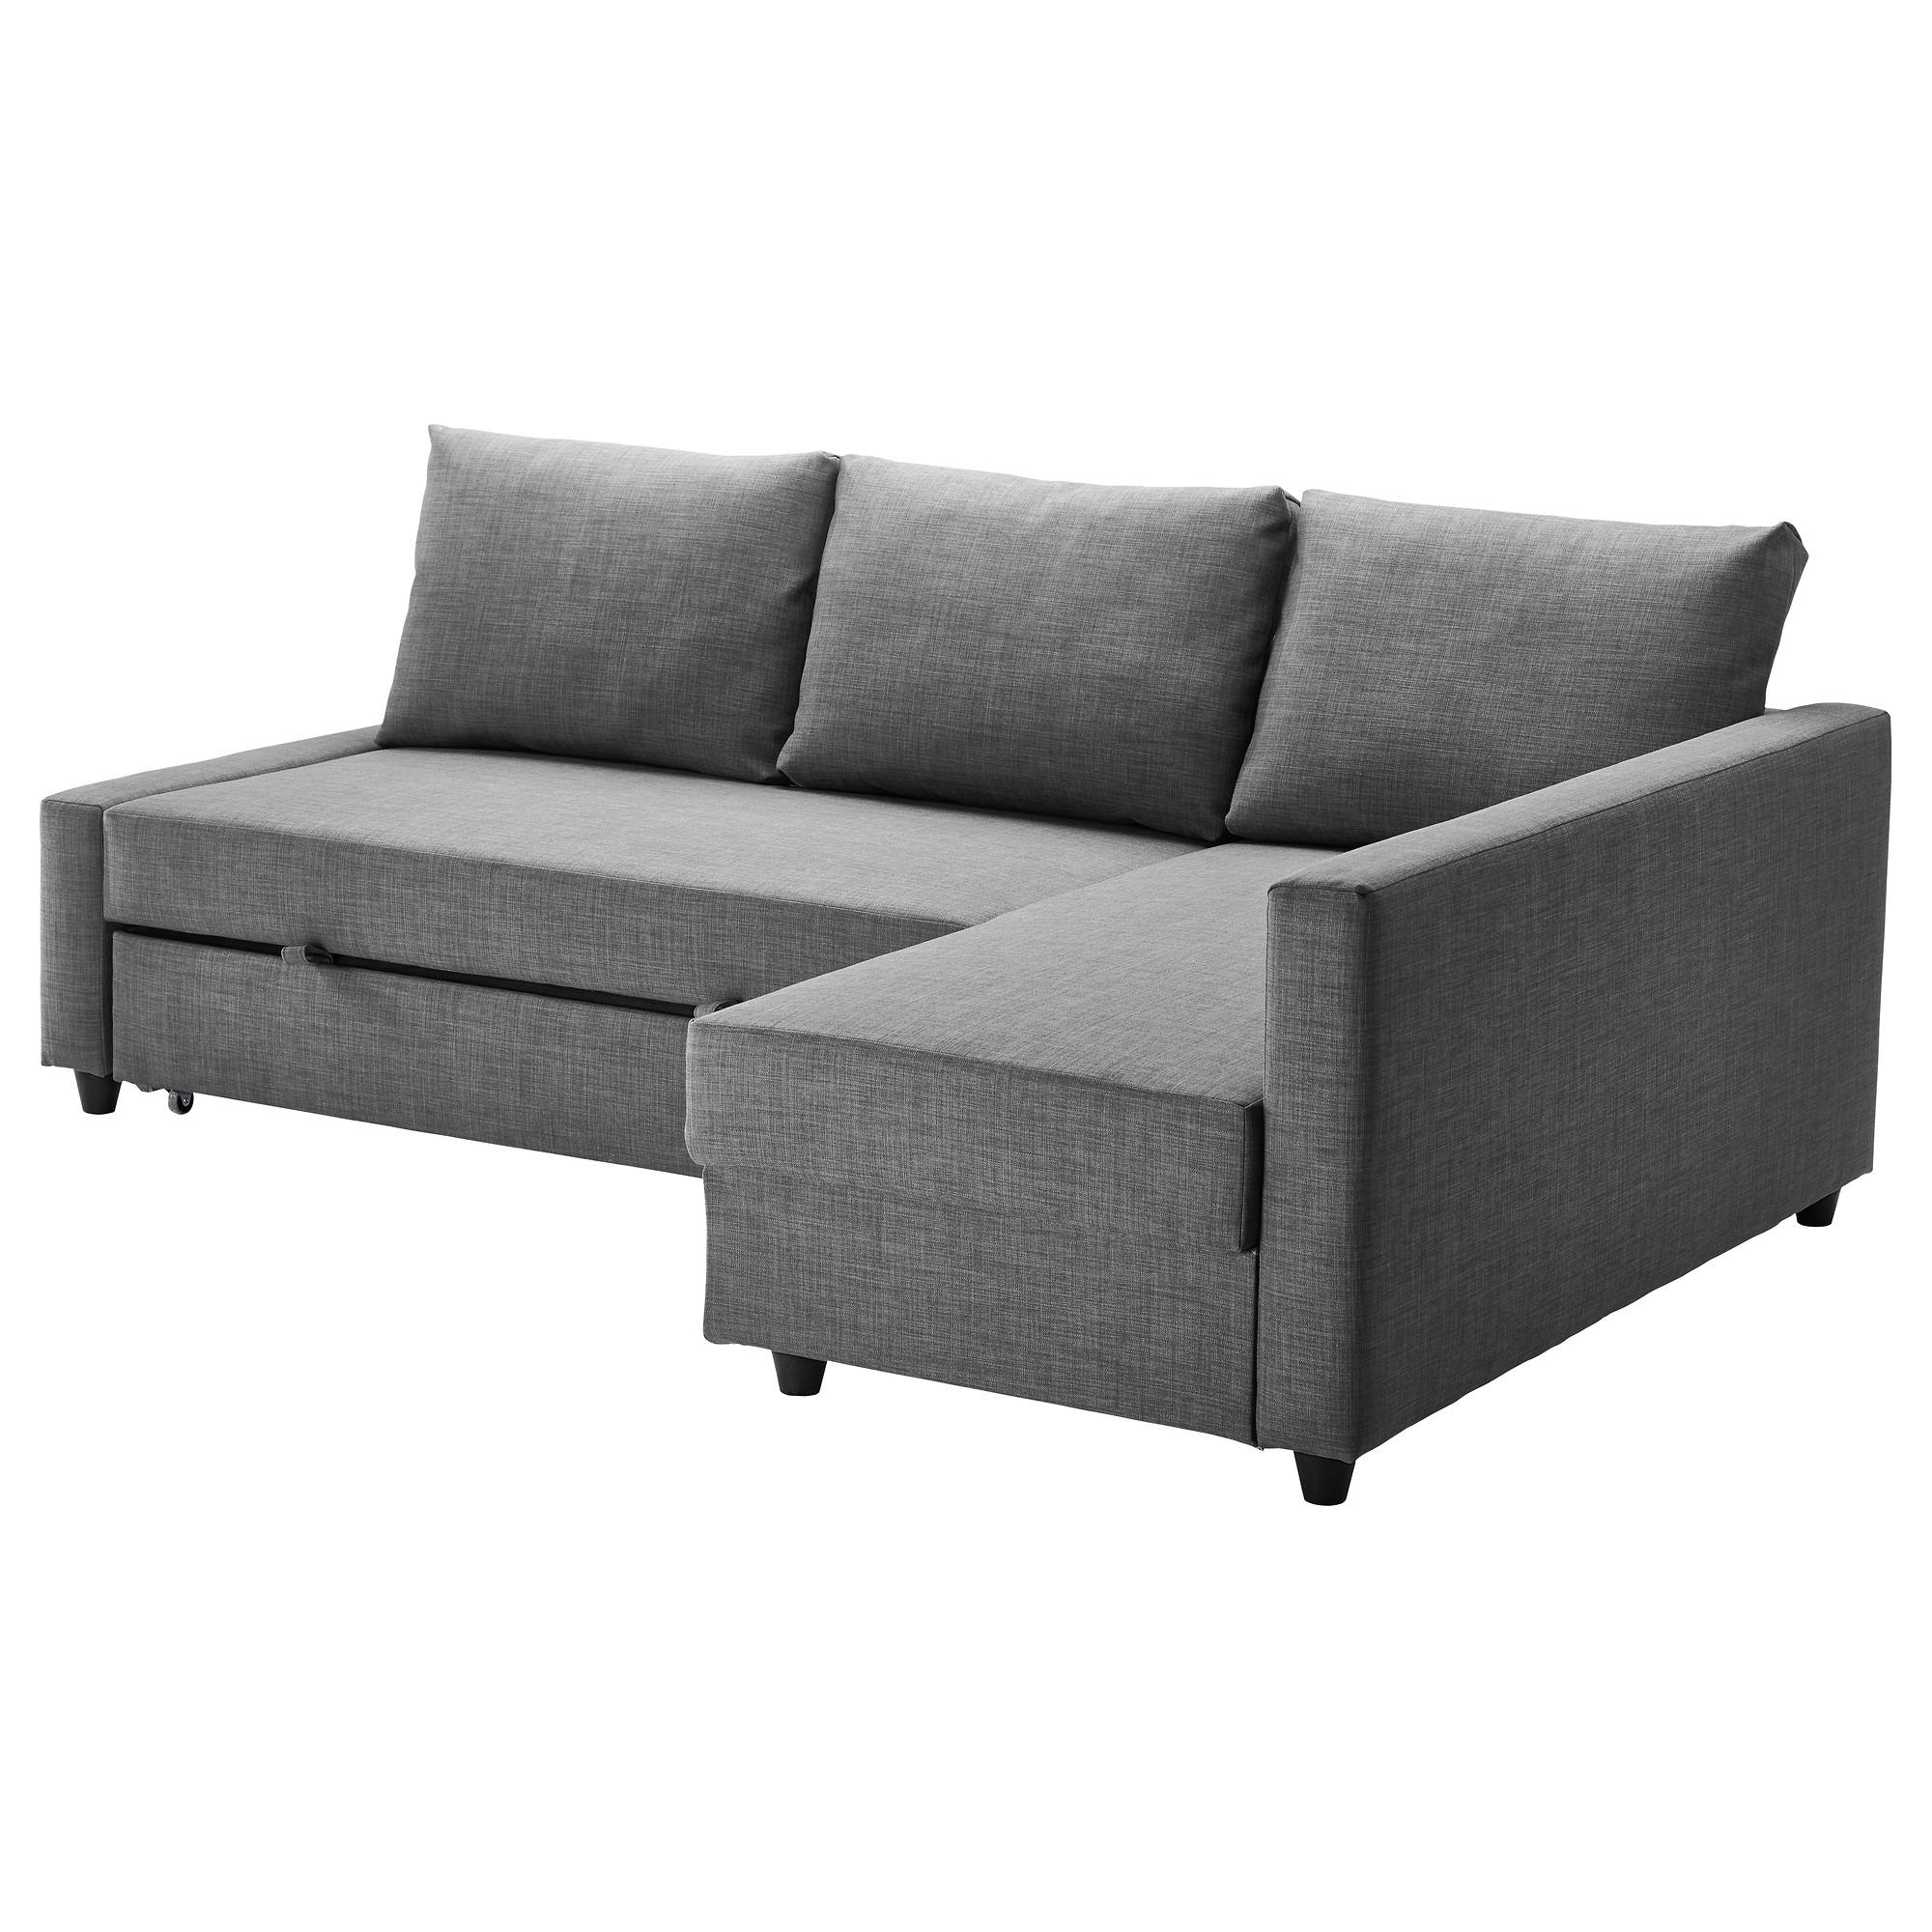 full dreaded sleeper of chaise withise sectional photos armless inspirations storage sofa size lounge with